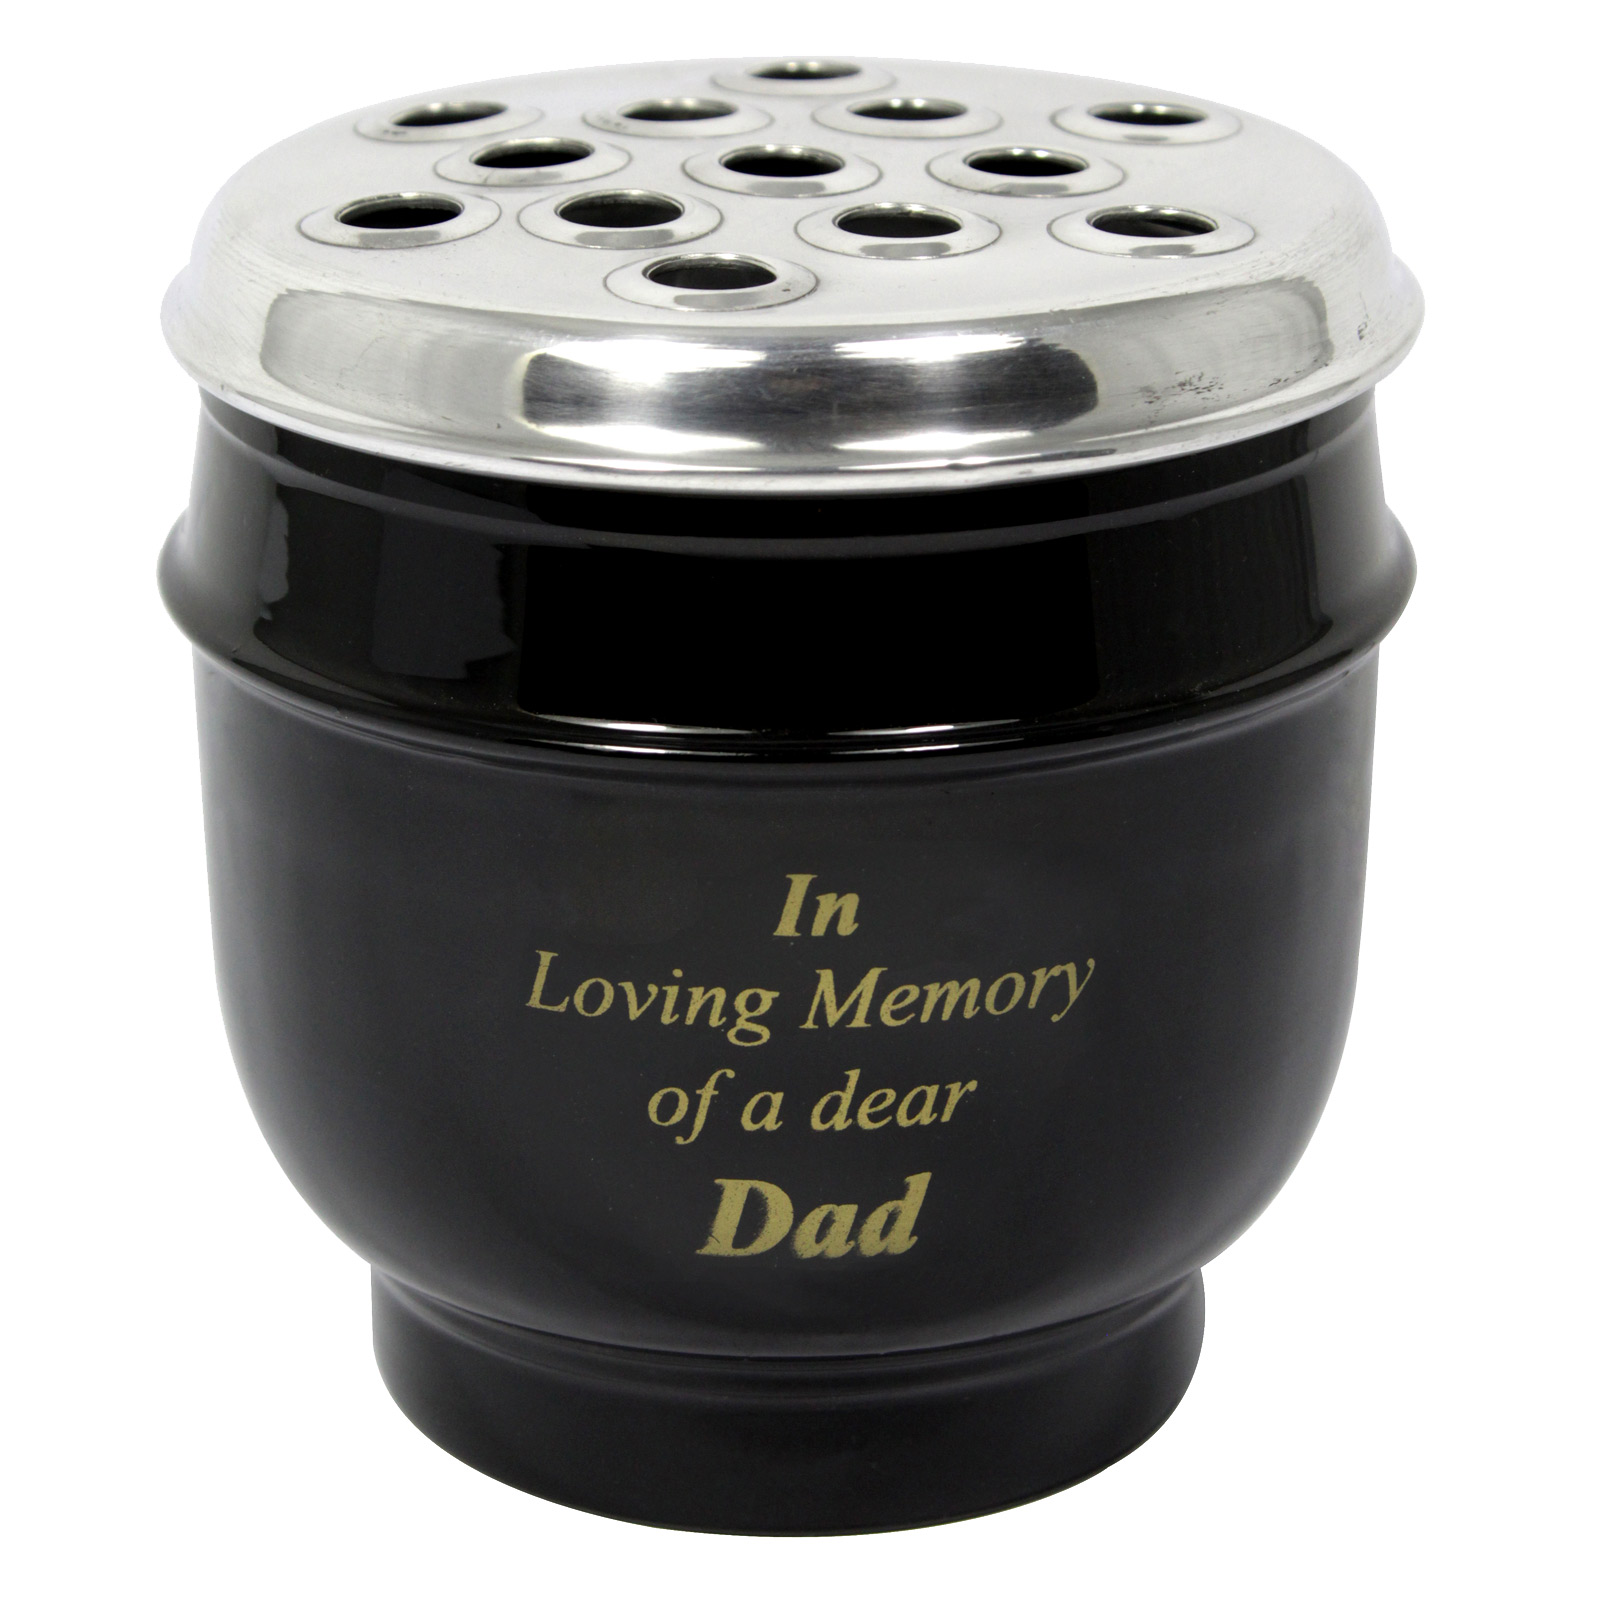 METAL GRAVE VASE BLACK WITH SILVER LID IN LOVING MEMORY OF A DEAR DAD EACH